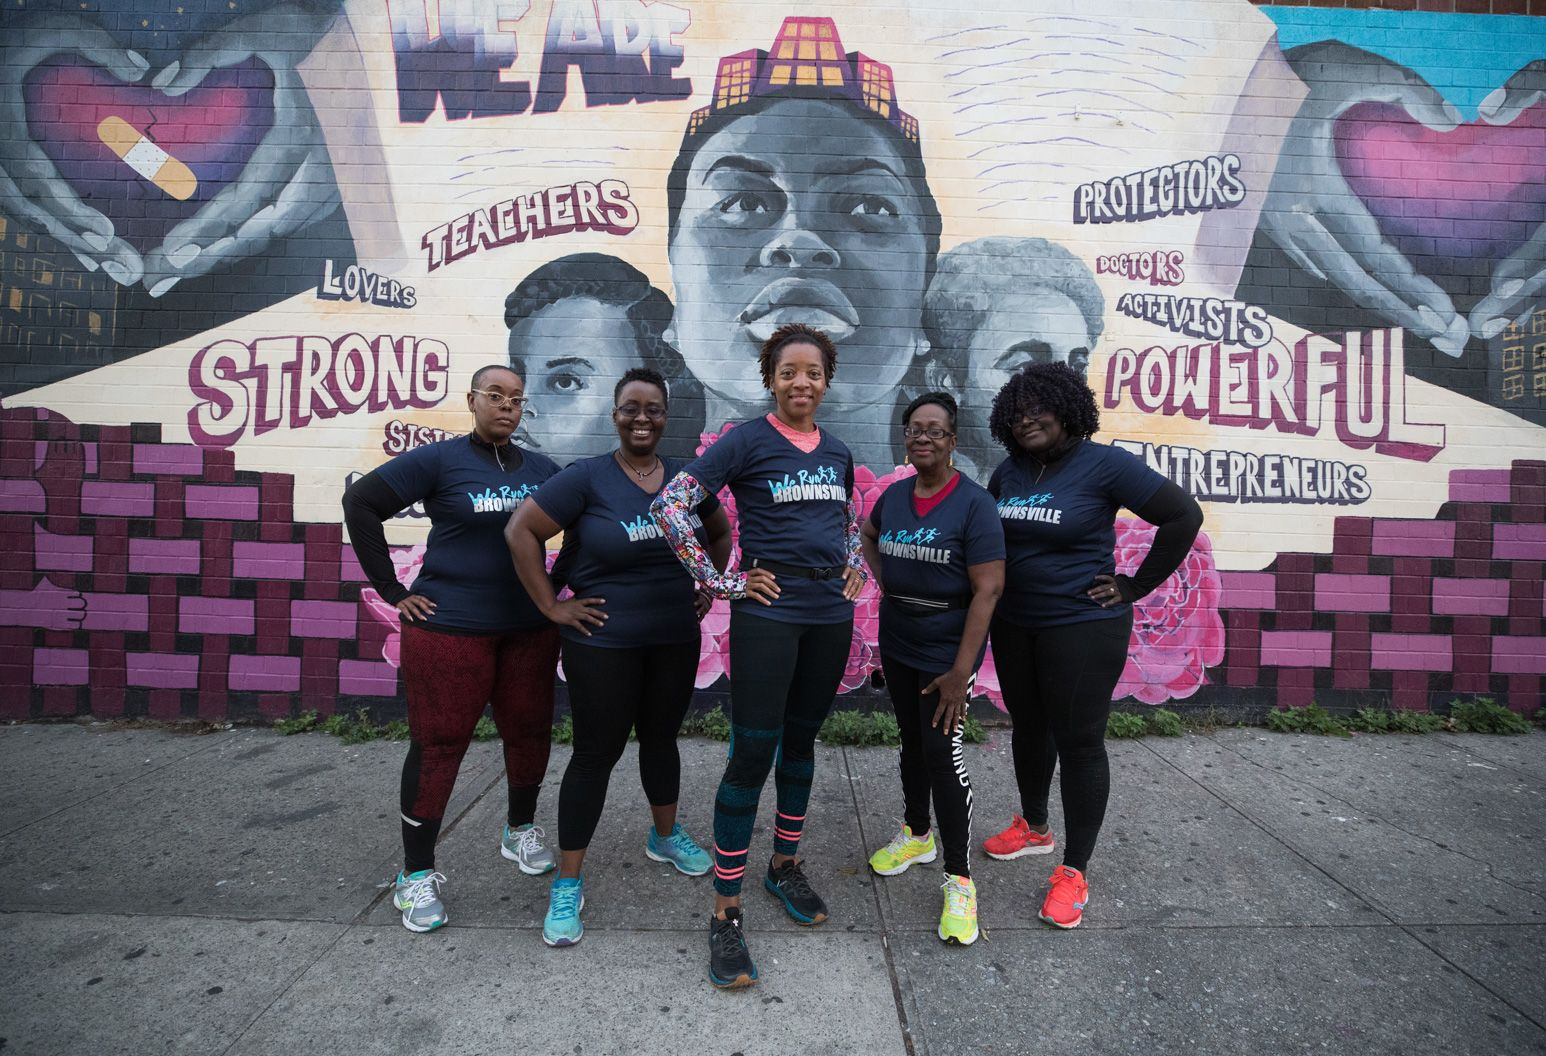 Five African American women stand with hands on hips wearing matching blue t-shirts, leggings and running sneakers. They pose in front of a mural that has a face and many words on it.